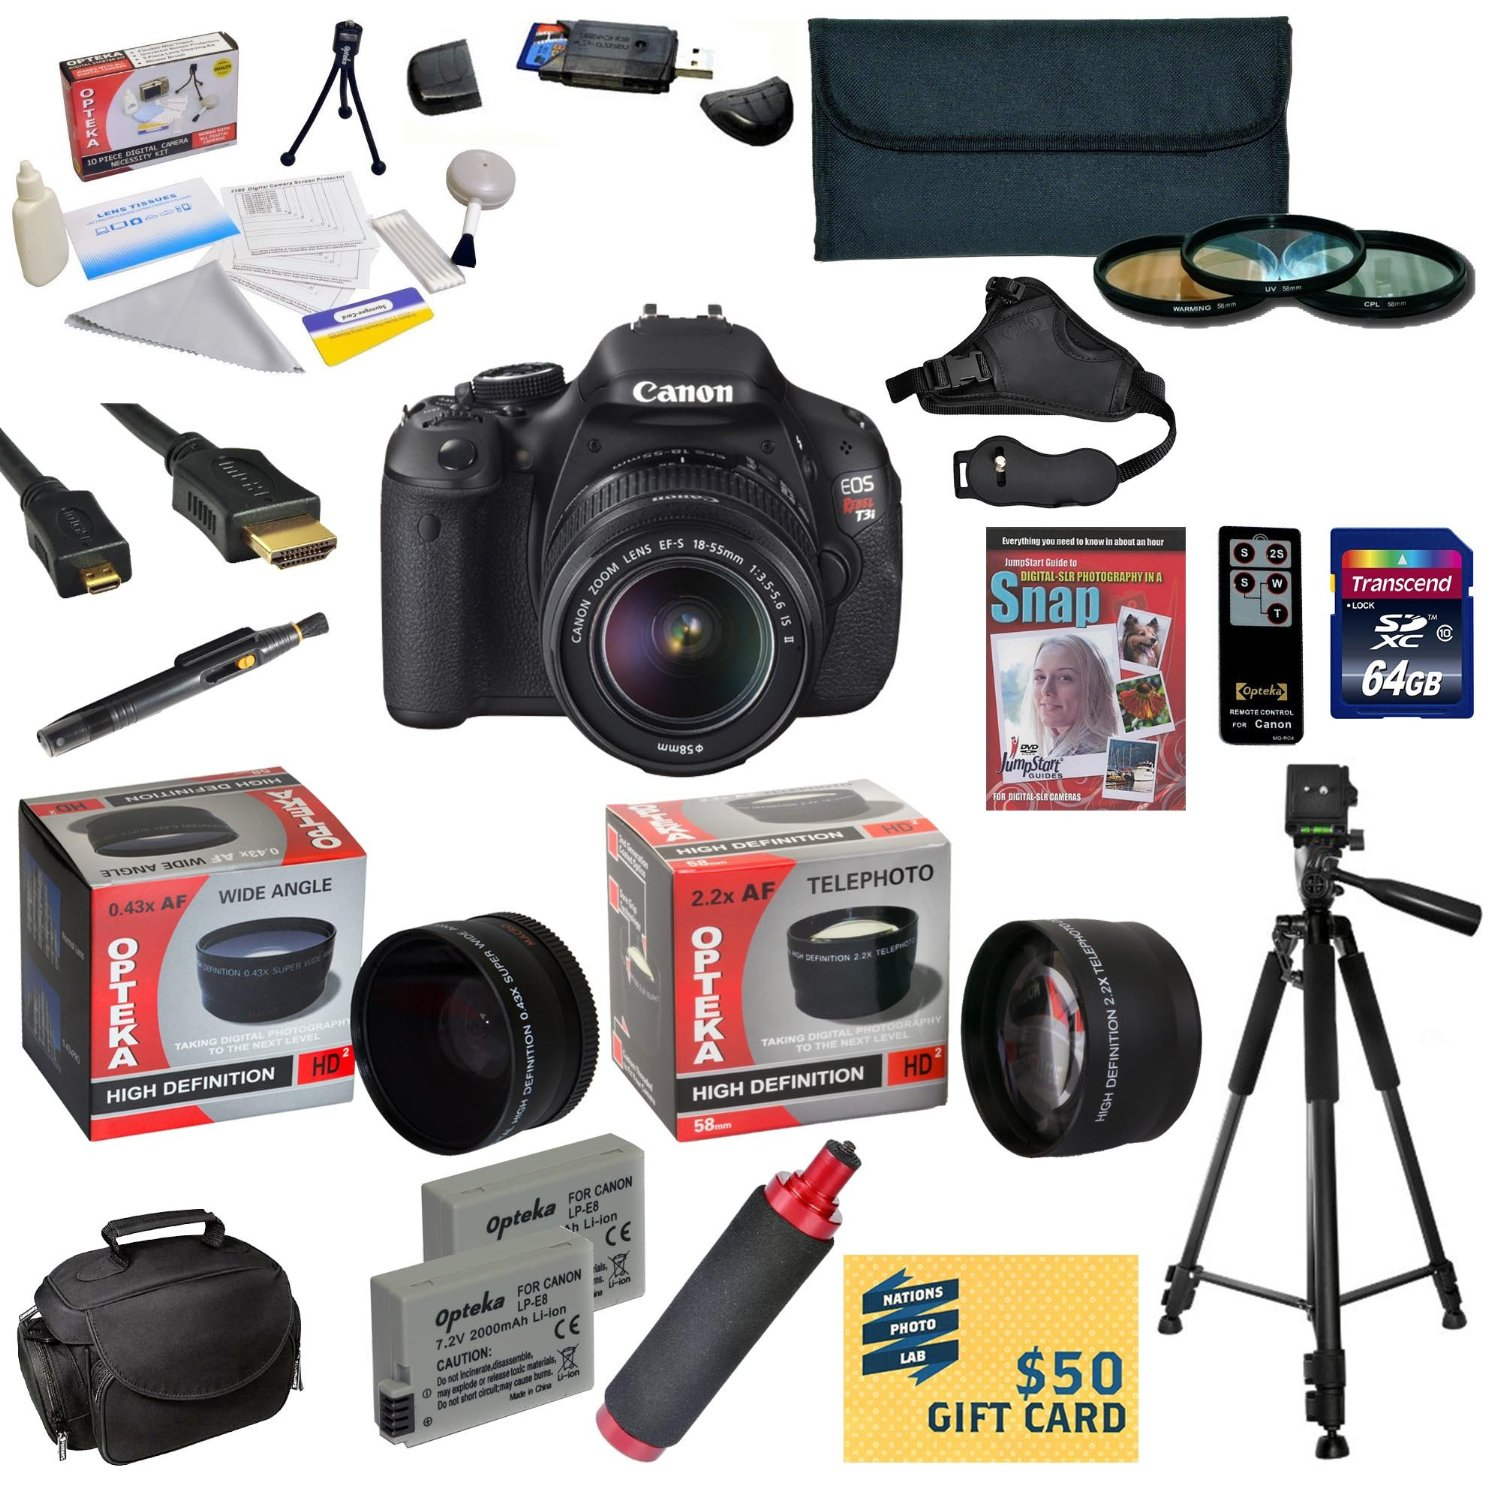 Canon EOS Rebel T3i DSLR Camera with EF-S 18-55mm f/3.5-5.6 IS STM With 64GB Card, 2 Batteries, Charger, 0.43x, 2.2x Lens, 3 Piece Filters, HDMI Cable, Gadget Bag, Tripod, DVD, $50 Gift Card, More